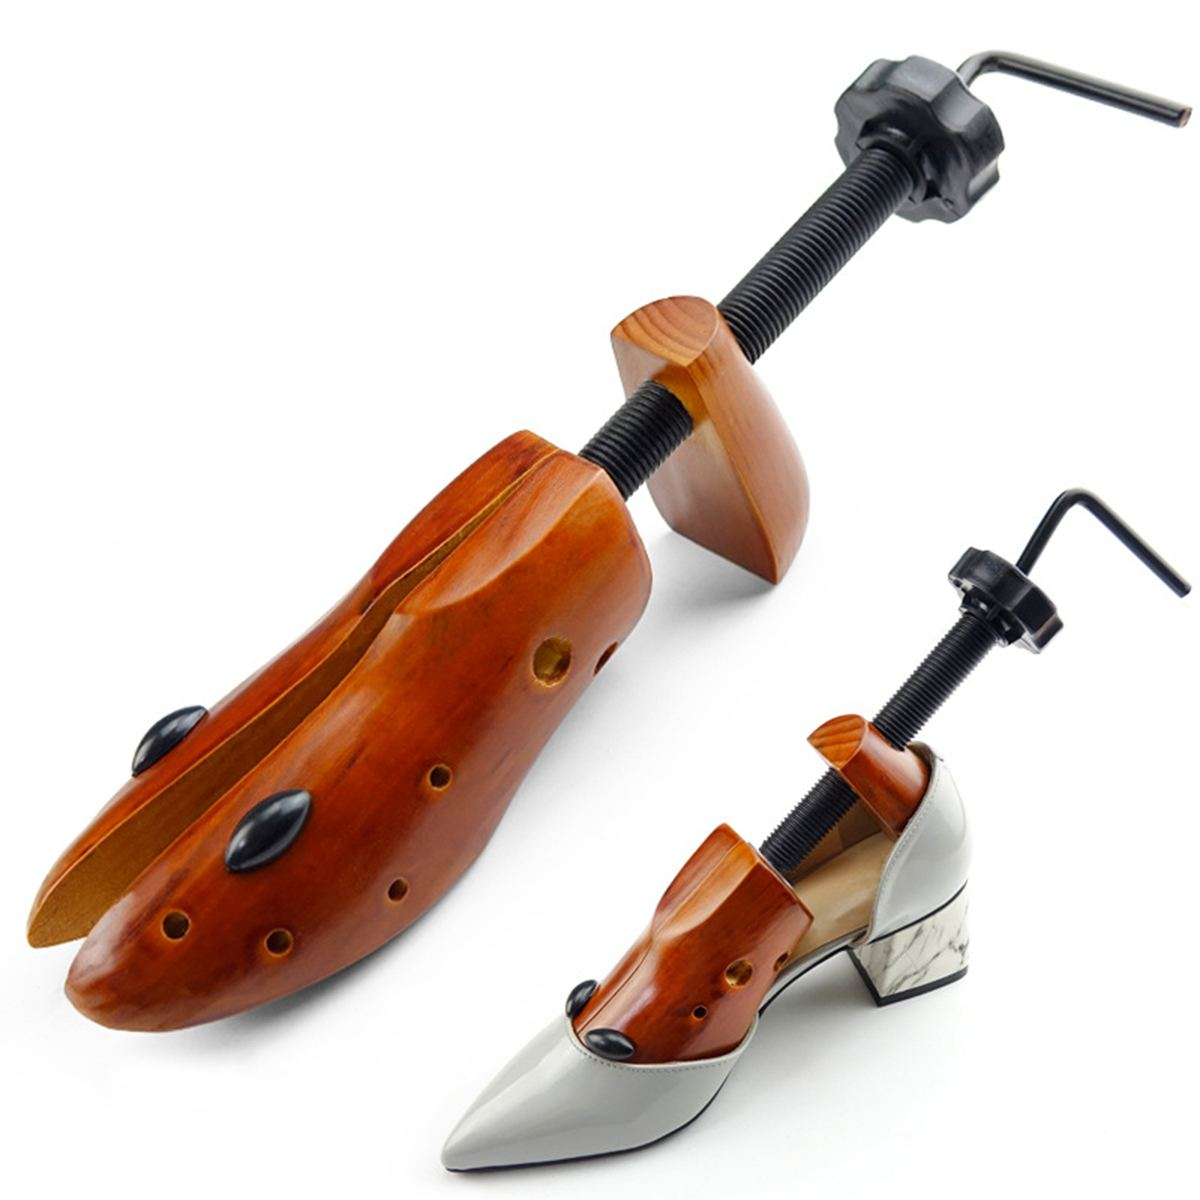 1pcs 2-Way Wooden Shoe Tree For Men And Women Shoes Expander Djustable Shoe Stretcher Shaper Rack Sawol